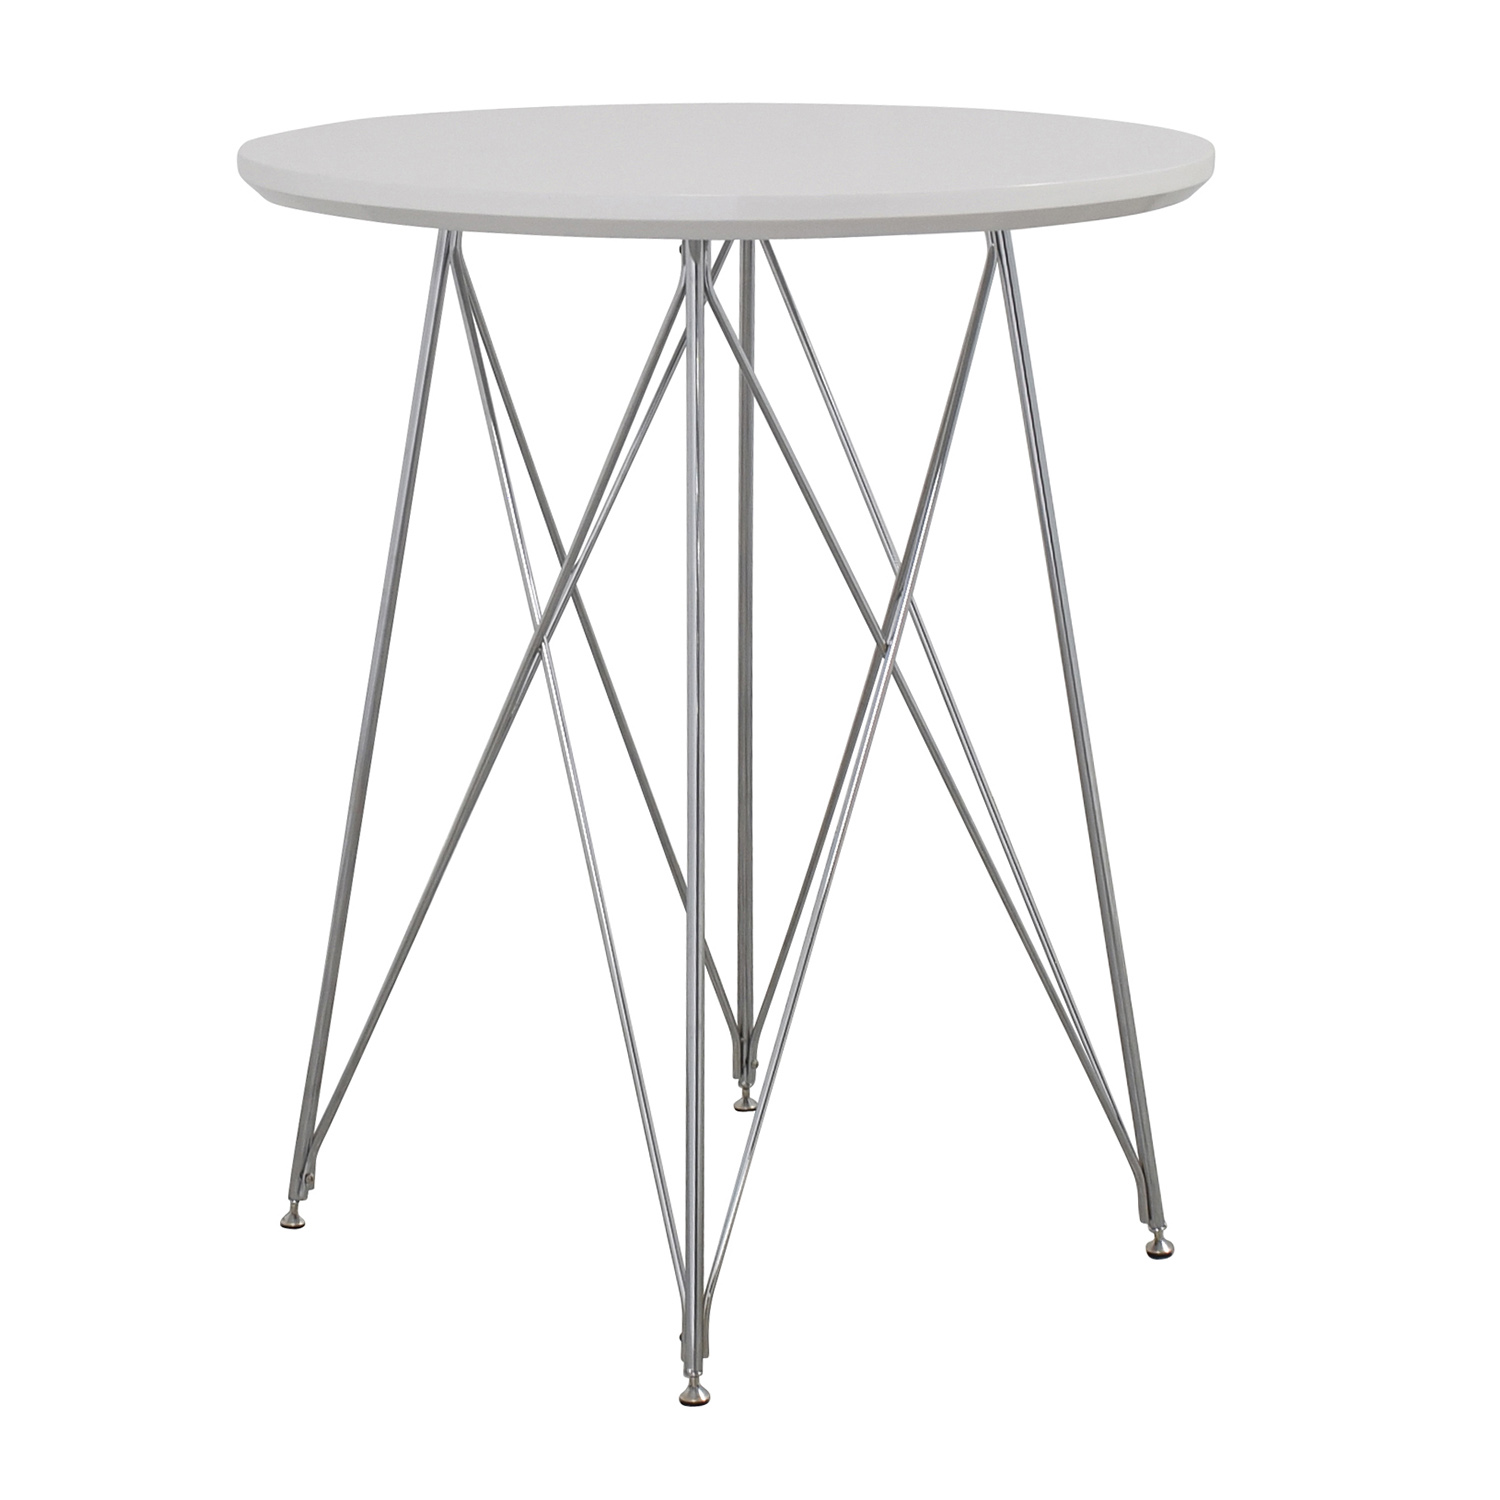 85 Off Monarch Furniture Monarch Furniture White Metal Bar Table Tables